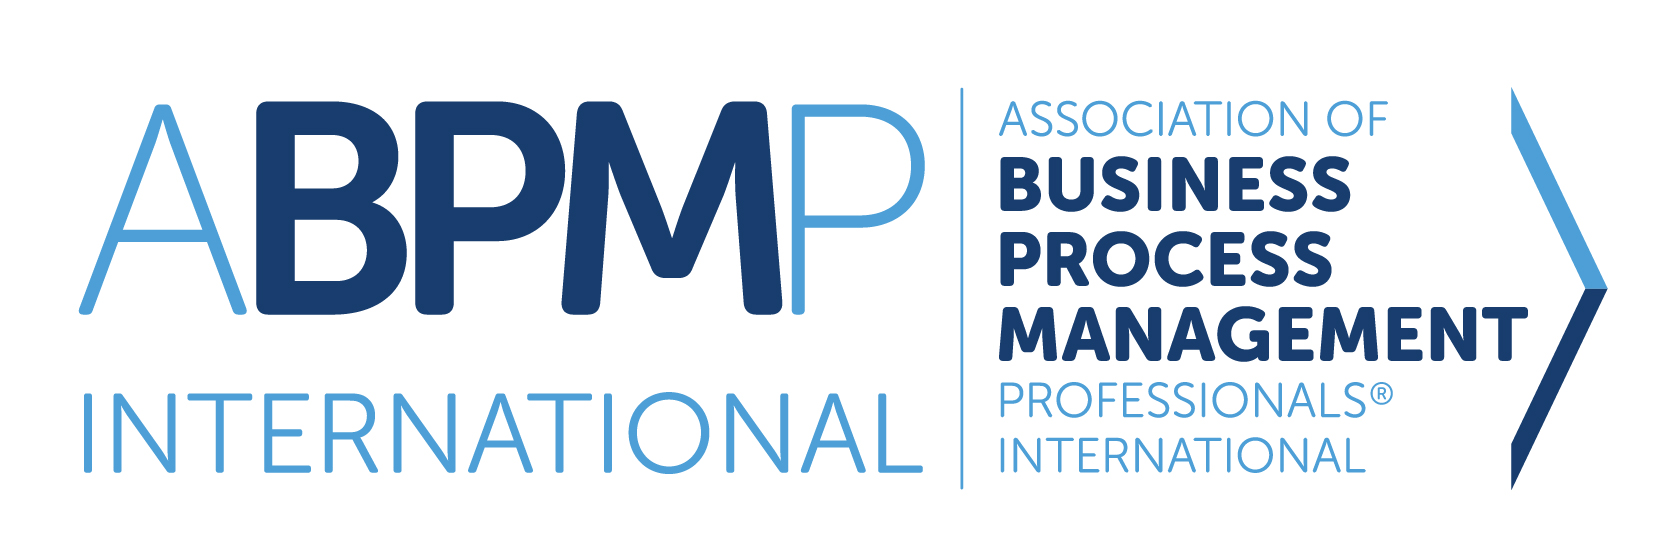 Association of Business Process Management Professionals Logo